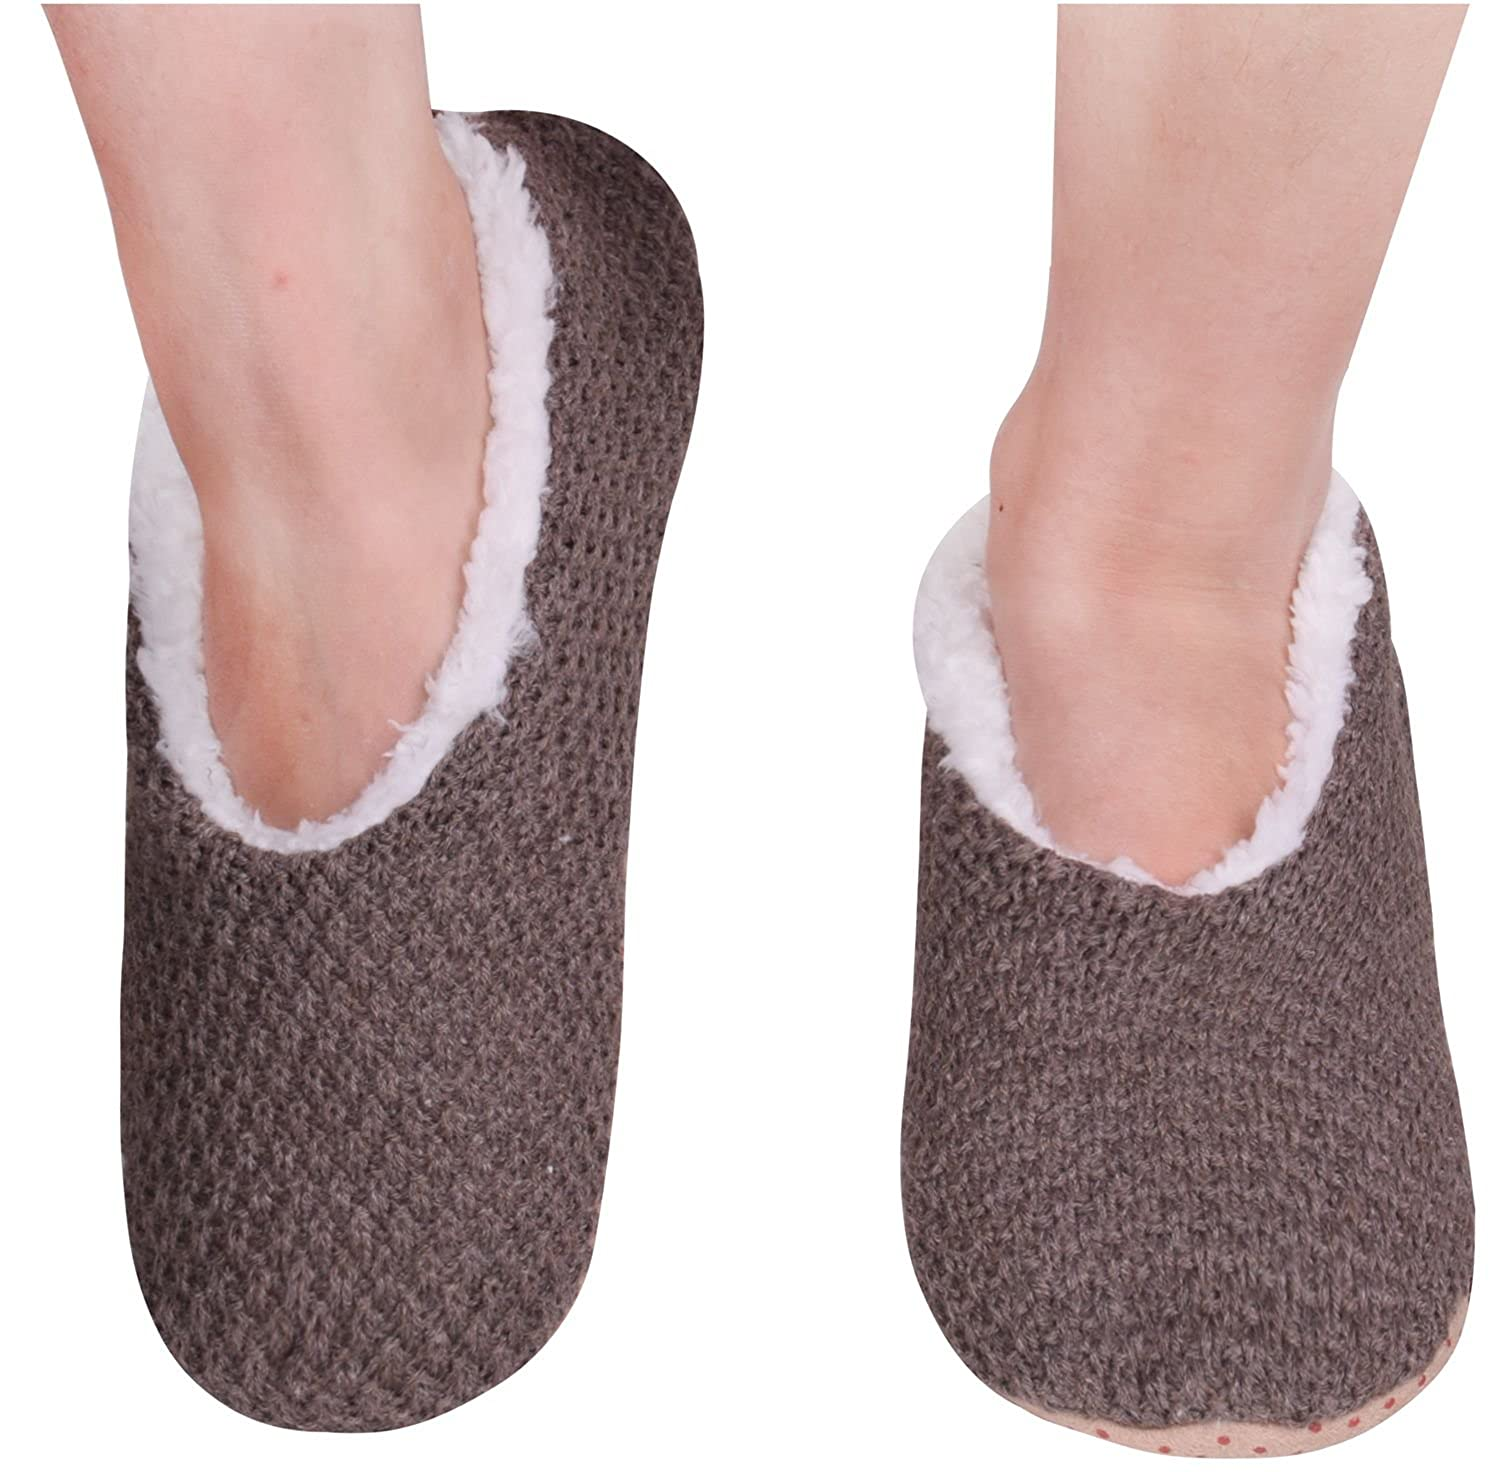 Amorismo Womens' Knit Slippers Shoes Non Slip Winter Warm ASOCKSLIPPERS3